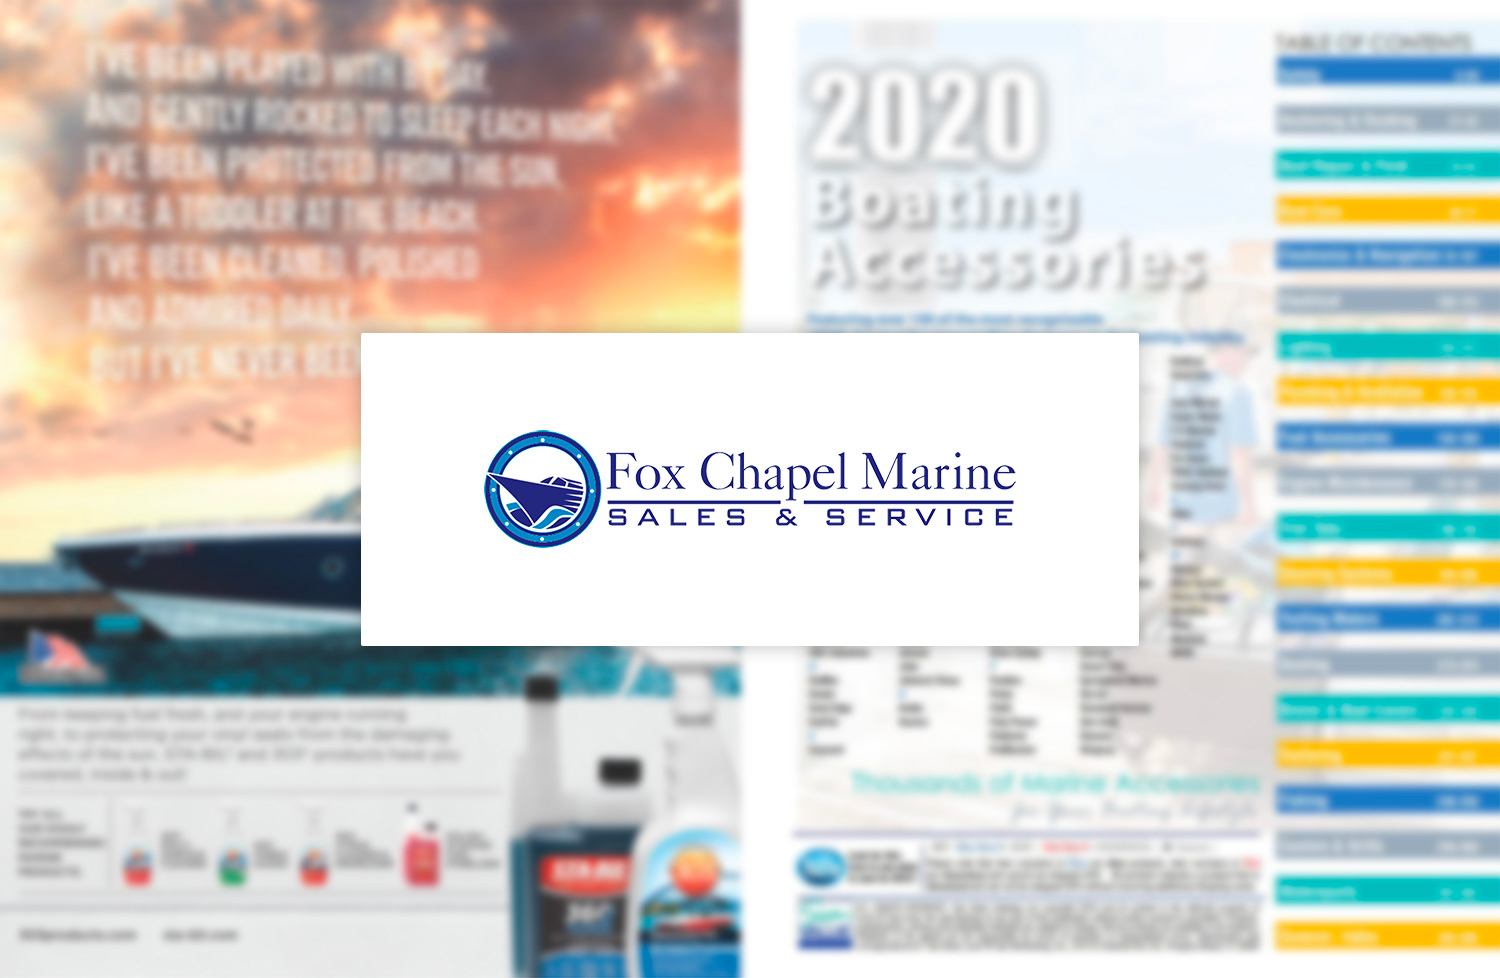 2020 Fox Chapel Marine Catalog